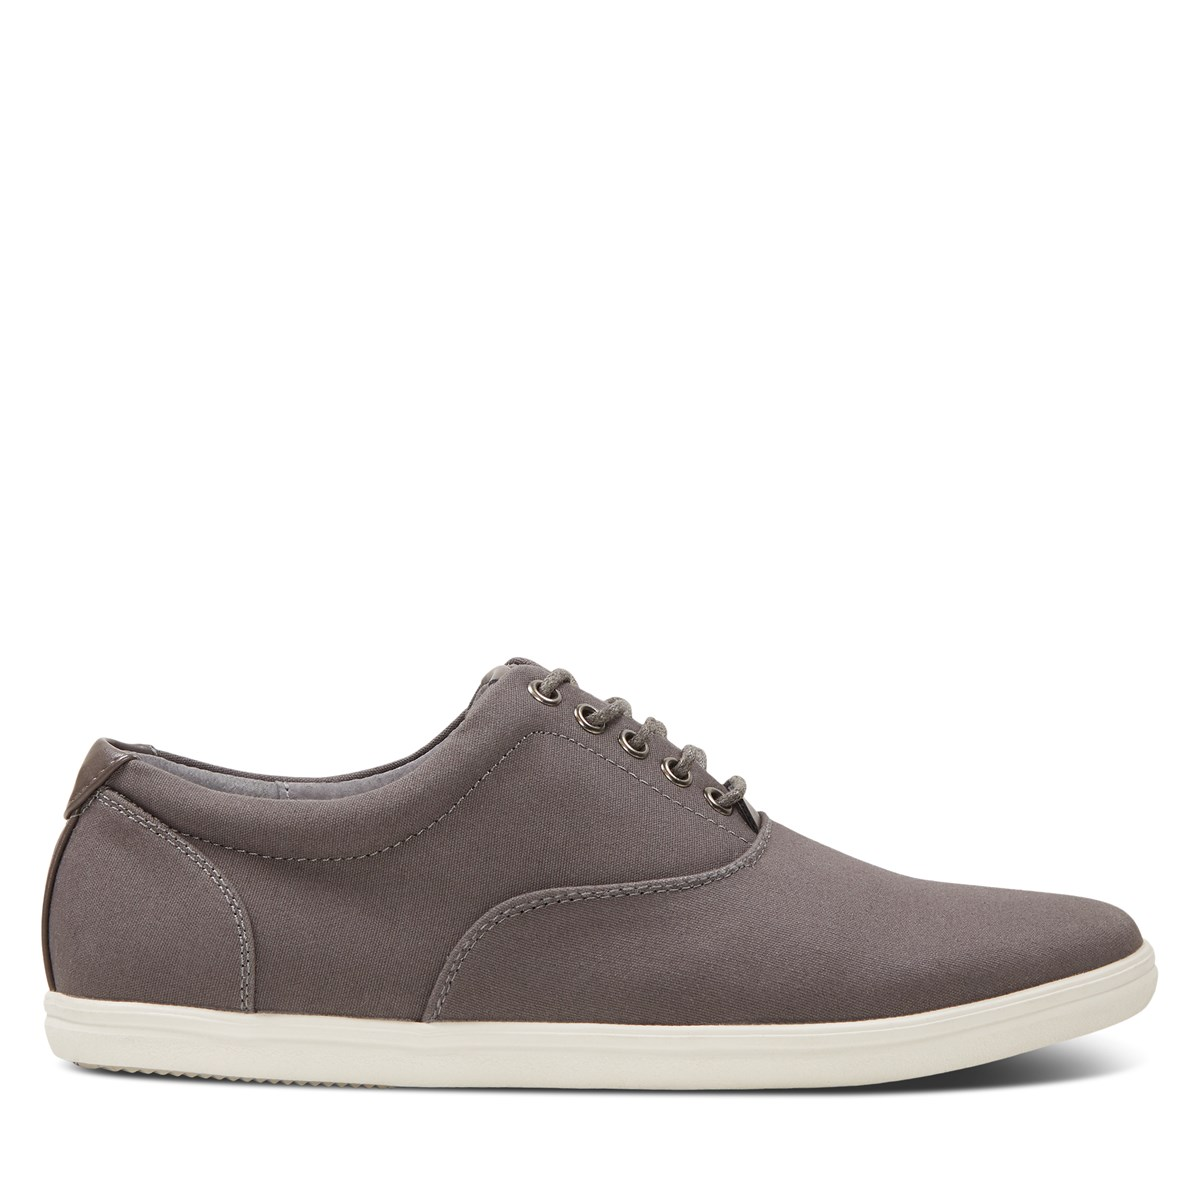 Men's Gustavo Shoes in Grey